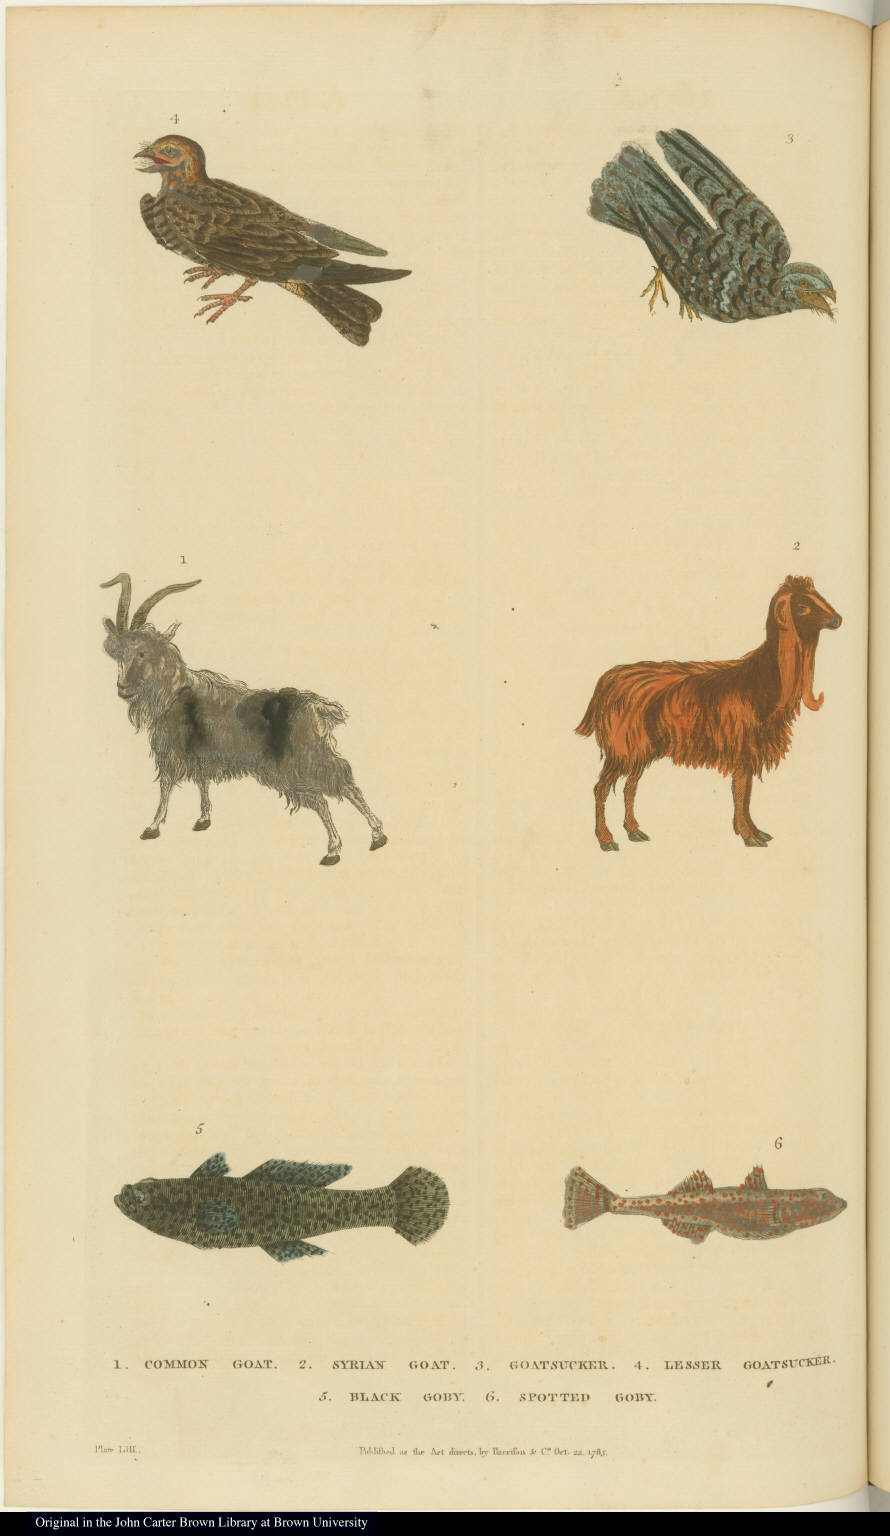 [Fish, birds, and goats]